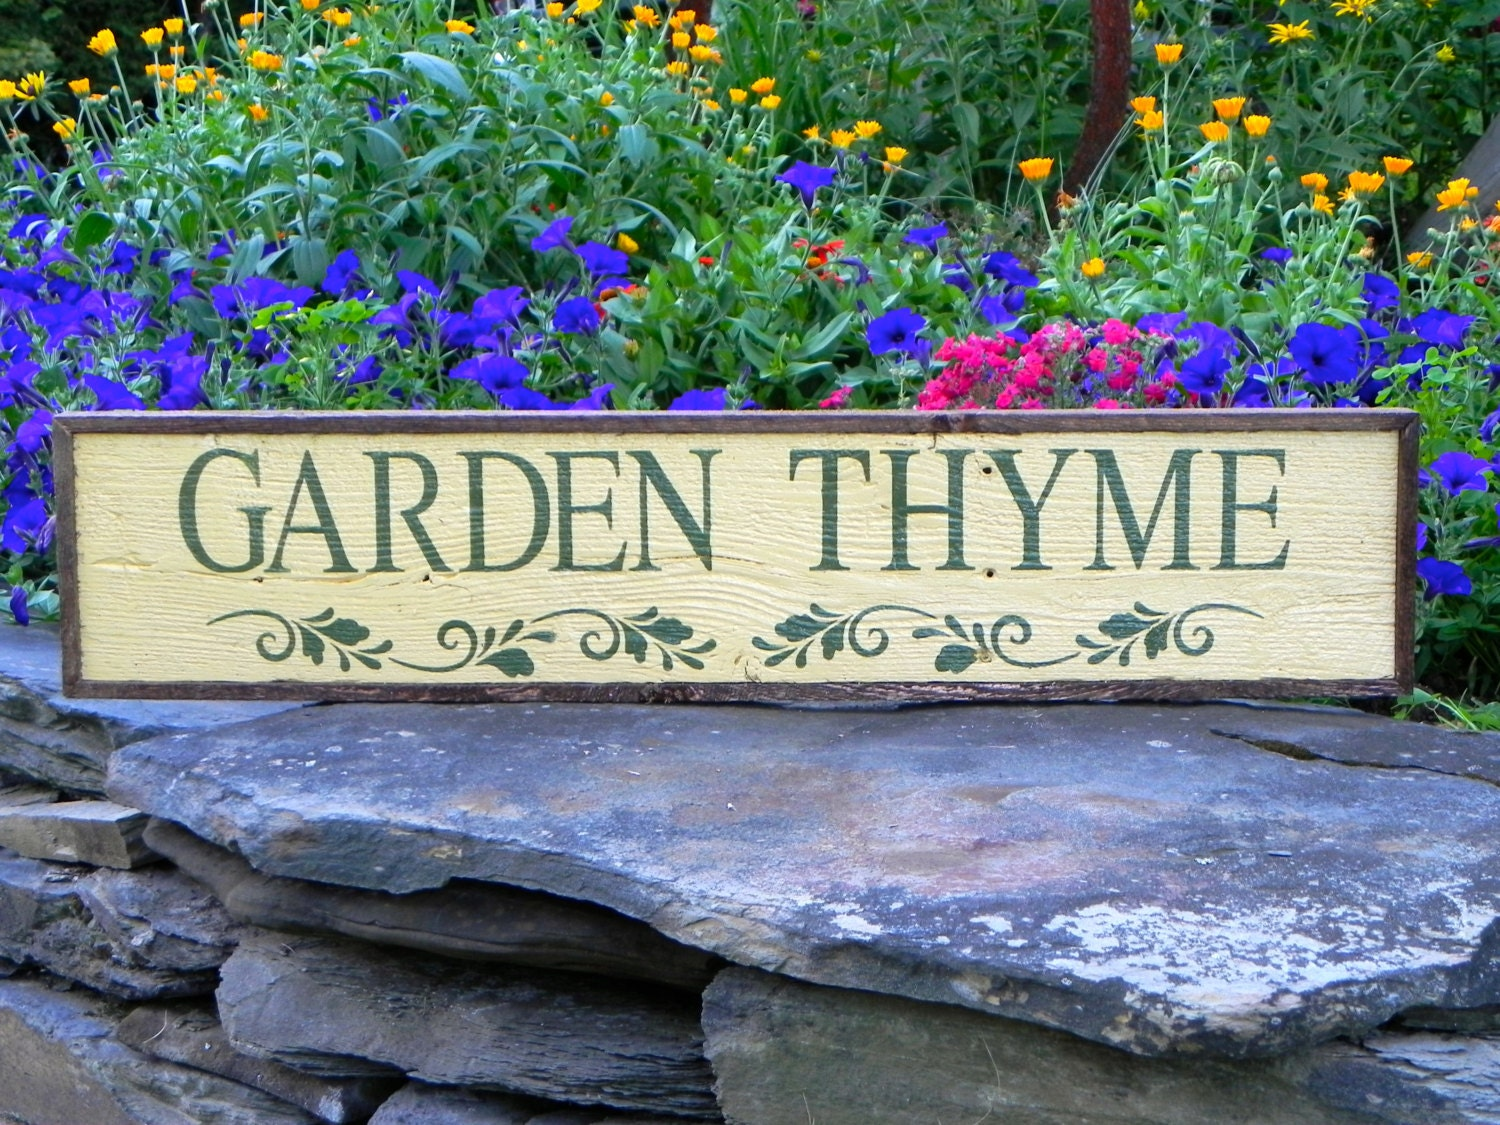 Garden thyme sign garden decor handmade wood by crowbardsigns for Outdoor decorative signs